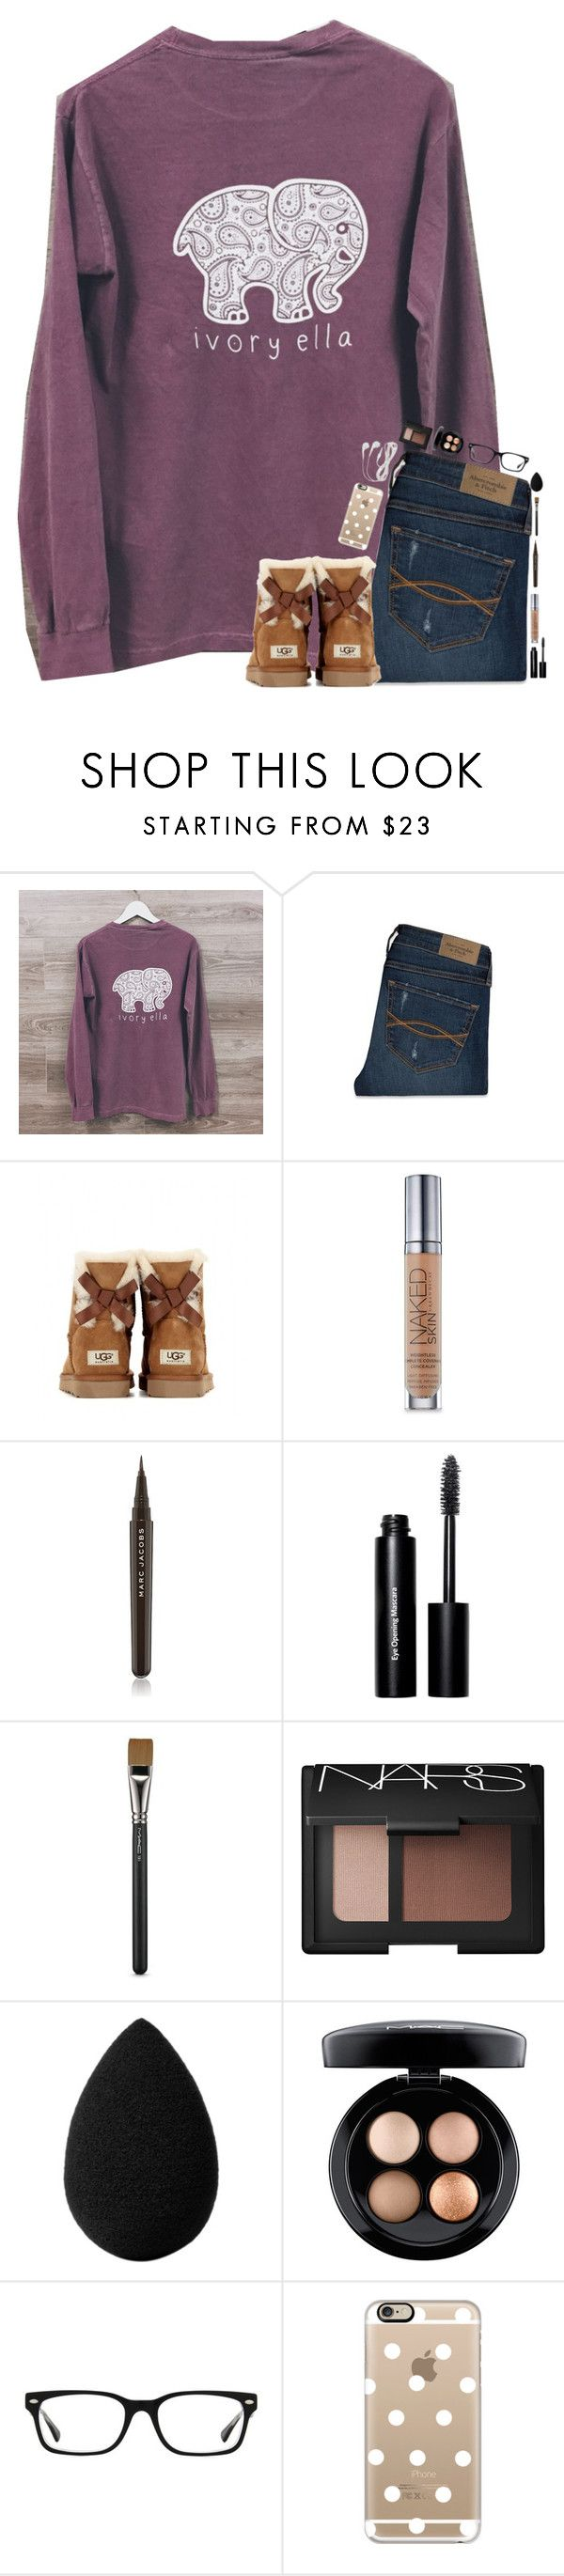 """""""~its really cold today~"""" by simply-natalee ❤ liked on Polyvore featuring Abercrombie & Fitch, UGG Australia, Urban Decay, Marc Jacobs, Bobbi Brown Cosmetics, MAC Cosmetics, NARS Cosmetics, beautyblender, Ray-Ban and Casetify"""